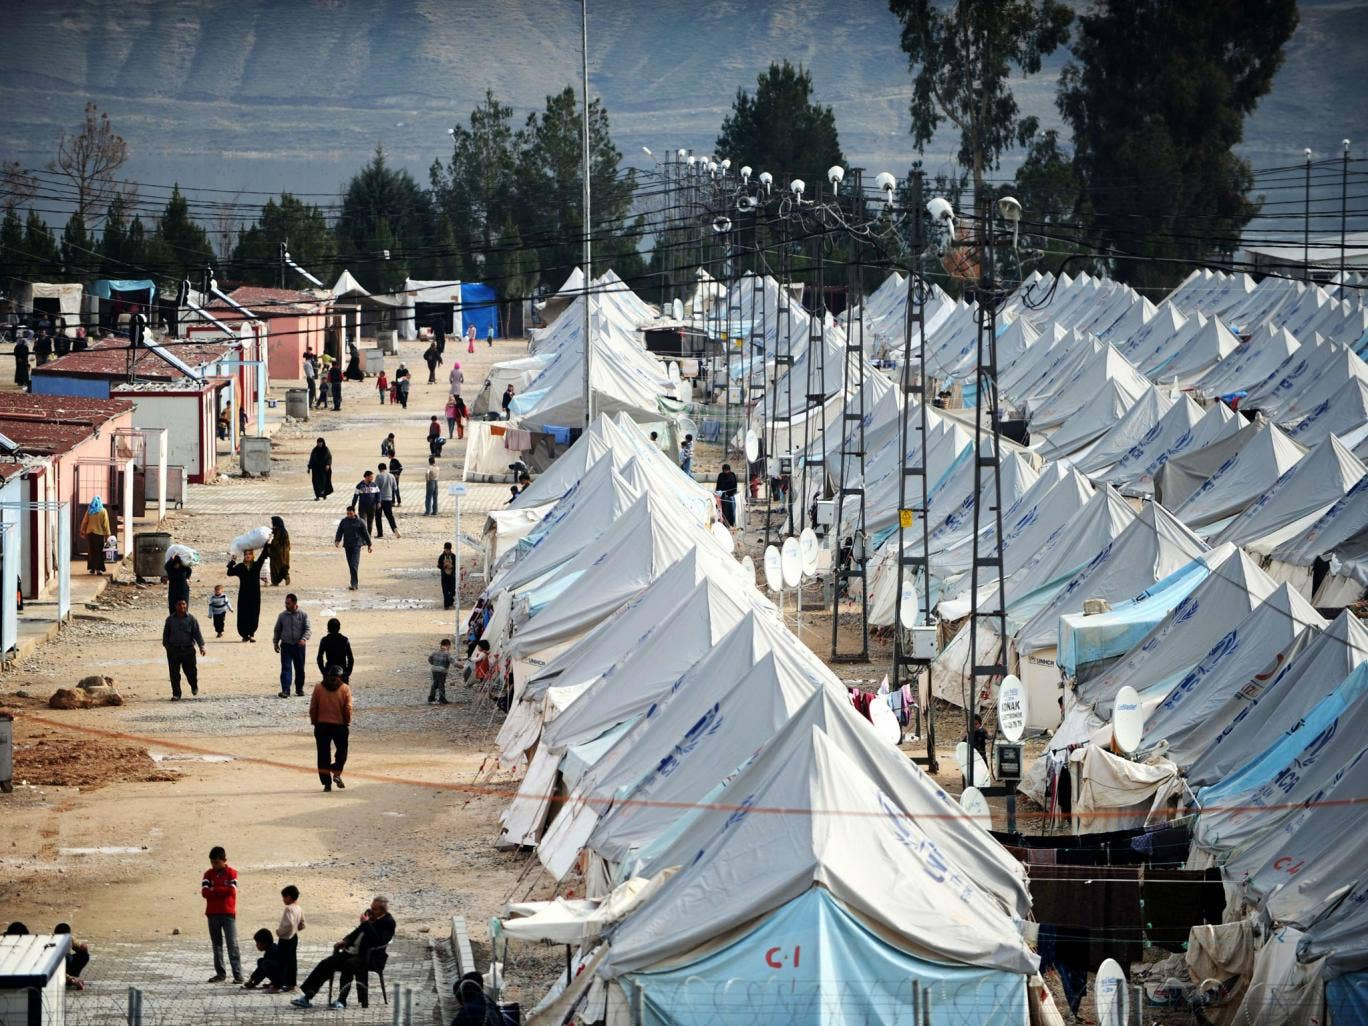 Syrian refugees walk among tents at Karkamis' refugee camp near the town of Gaziantep, south of Turkey